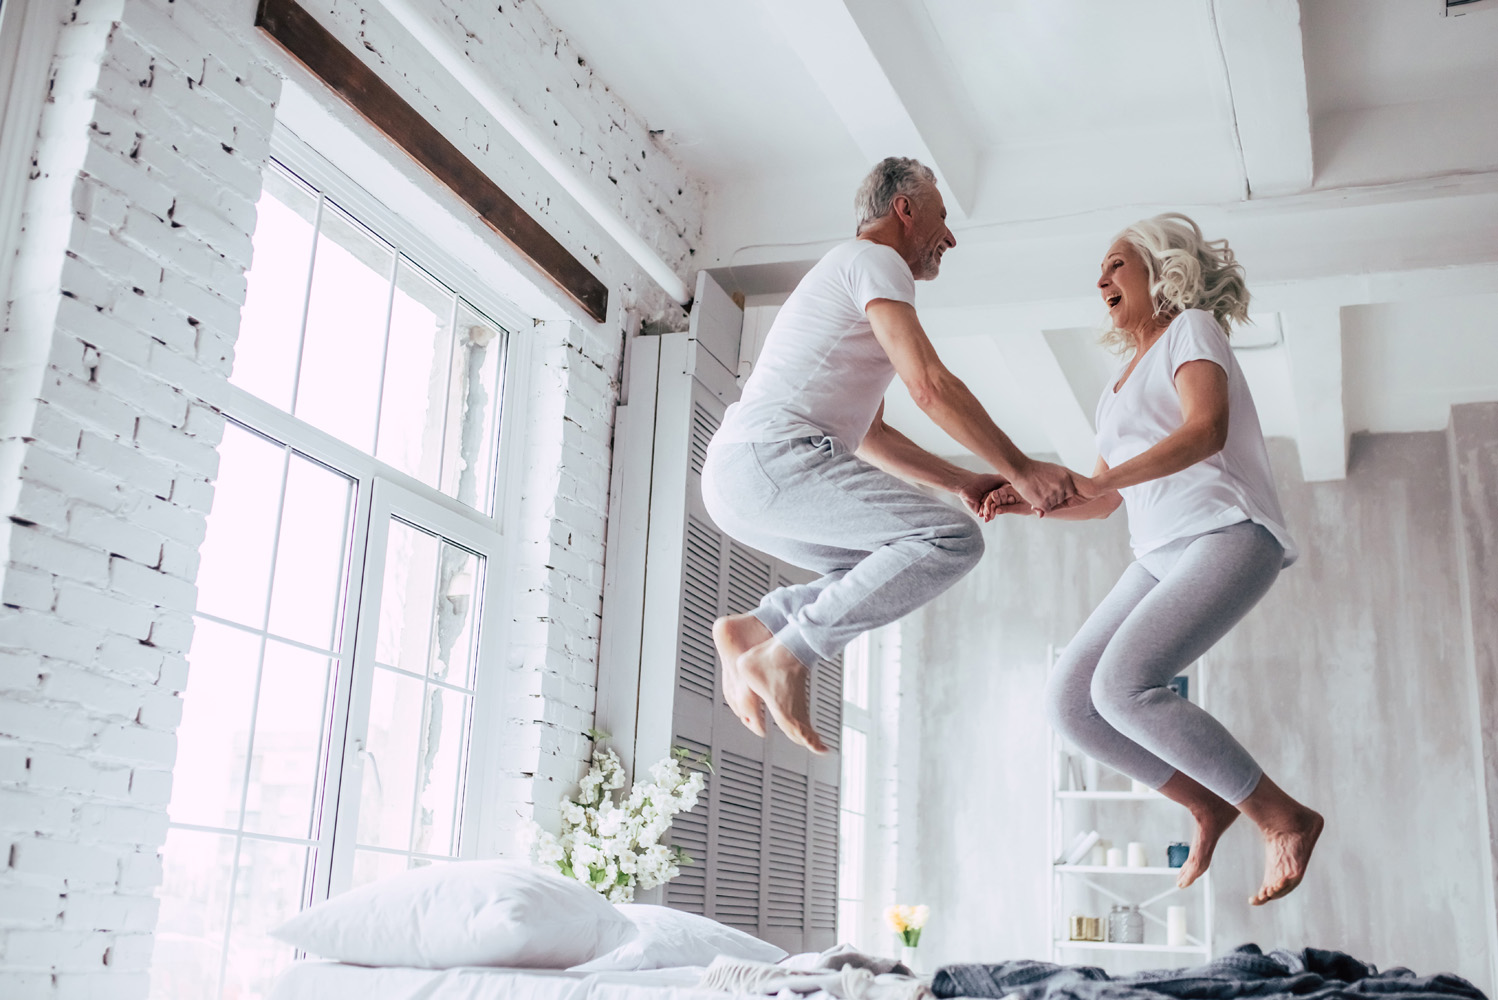 jumping-man-and-women